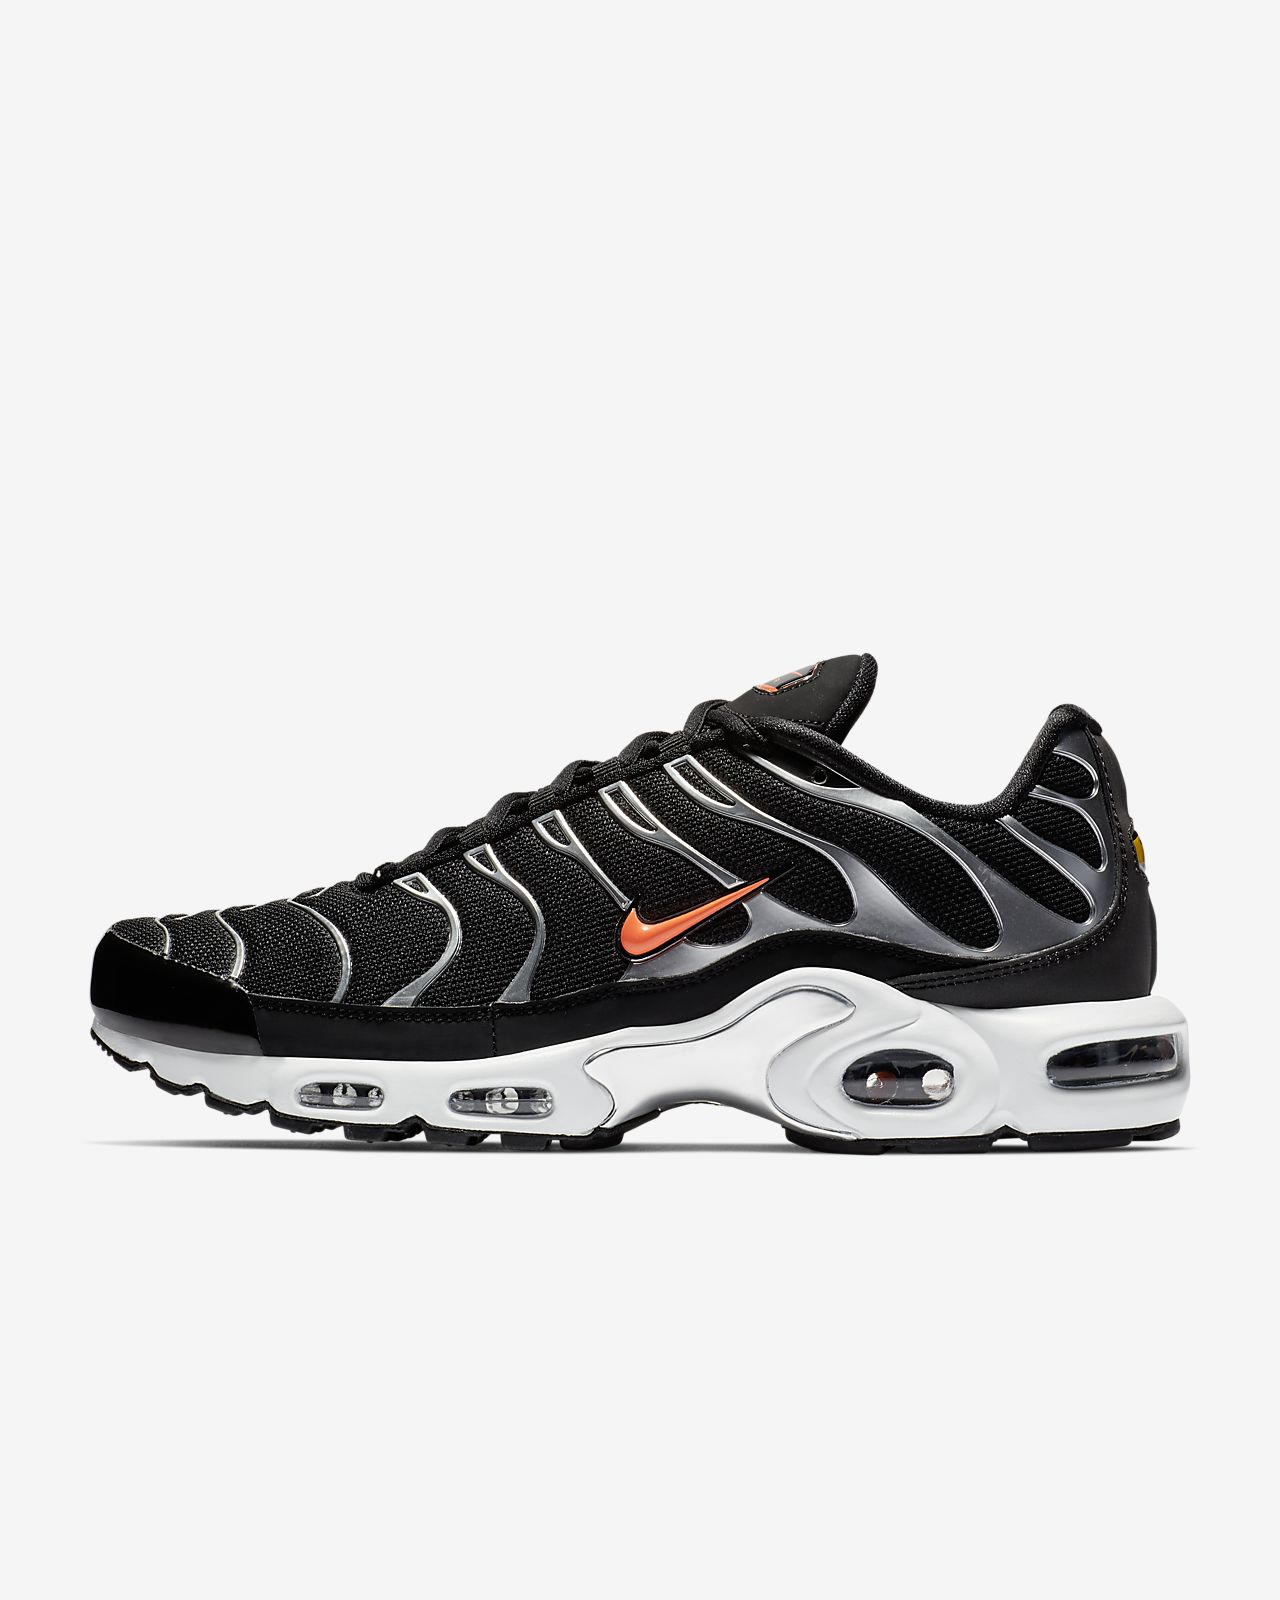 meet 5f61e b9326 ... Nike Air Max Plus TN SE Men s Shoe